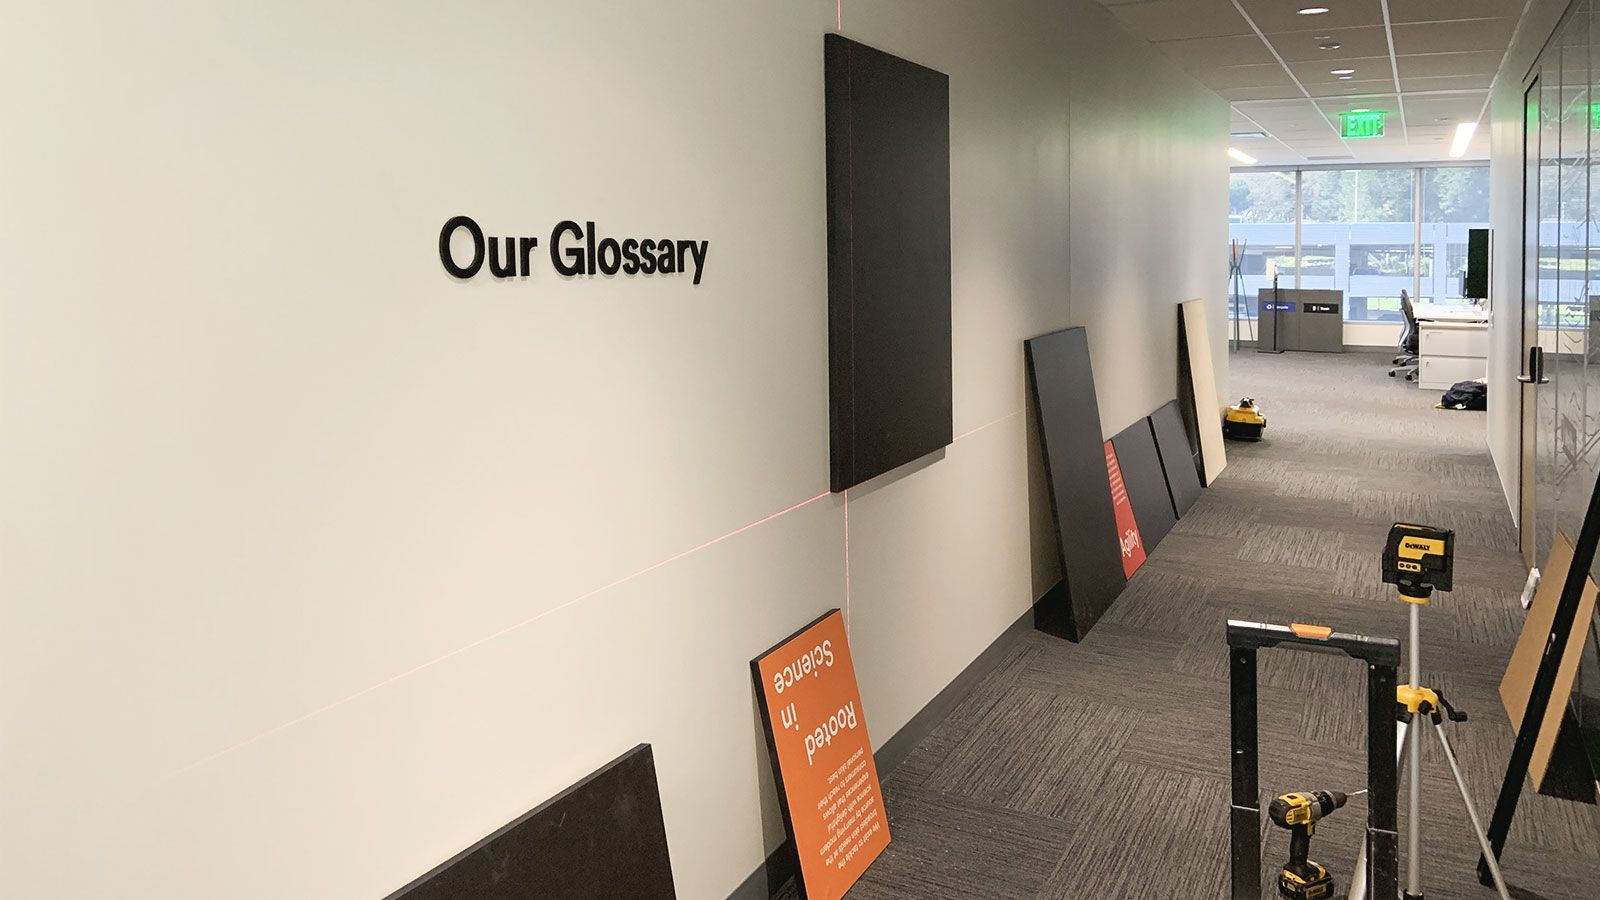 Neutrogena Interior signs installation